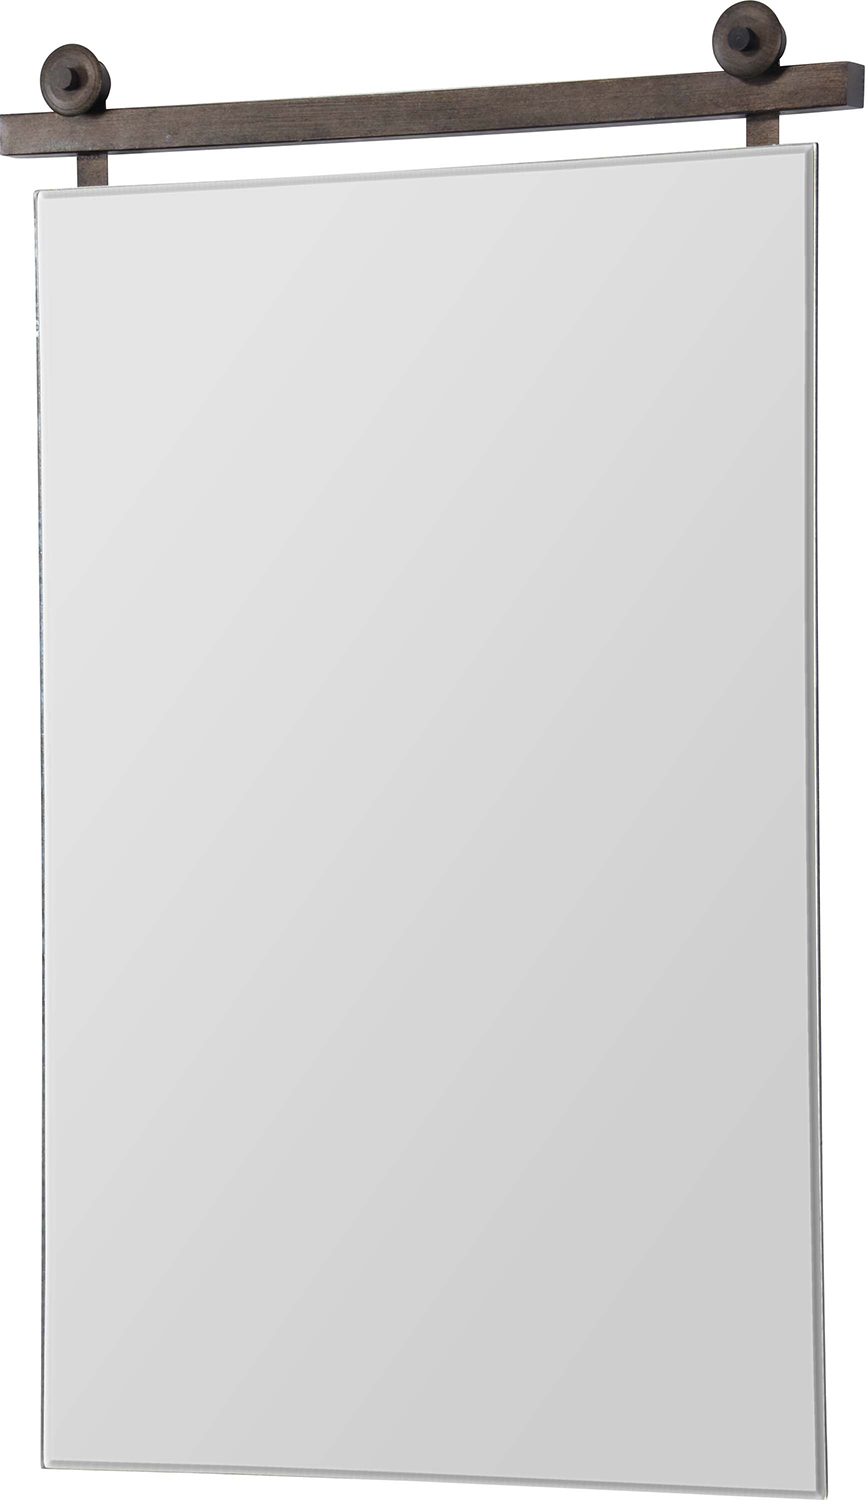 Ren-Wil Sersha Rectangular Mirror - Graphite Bronze Painted